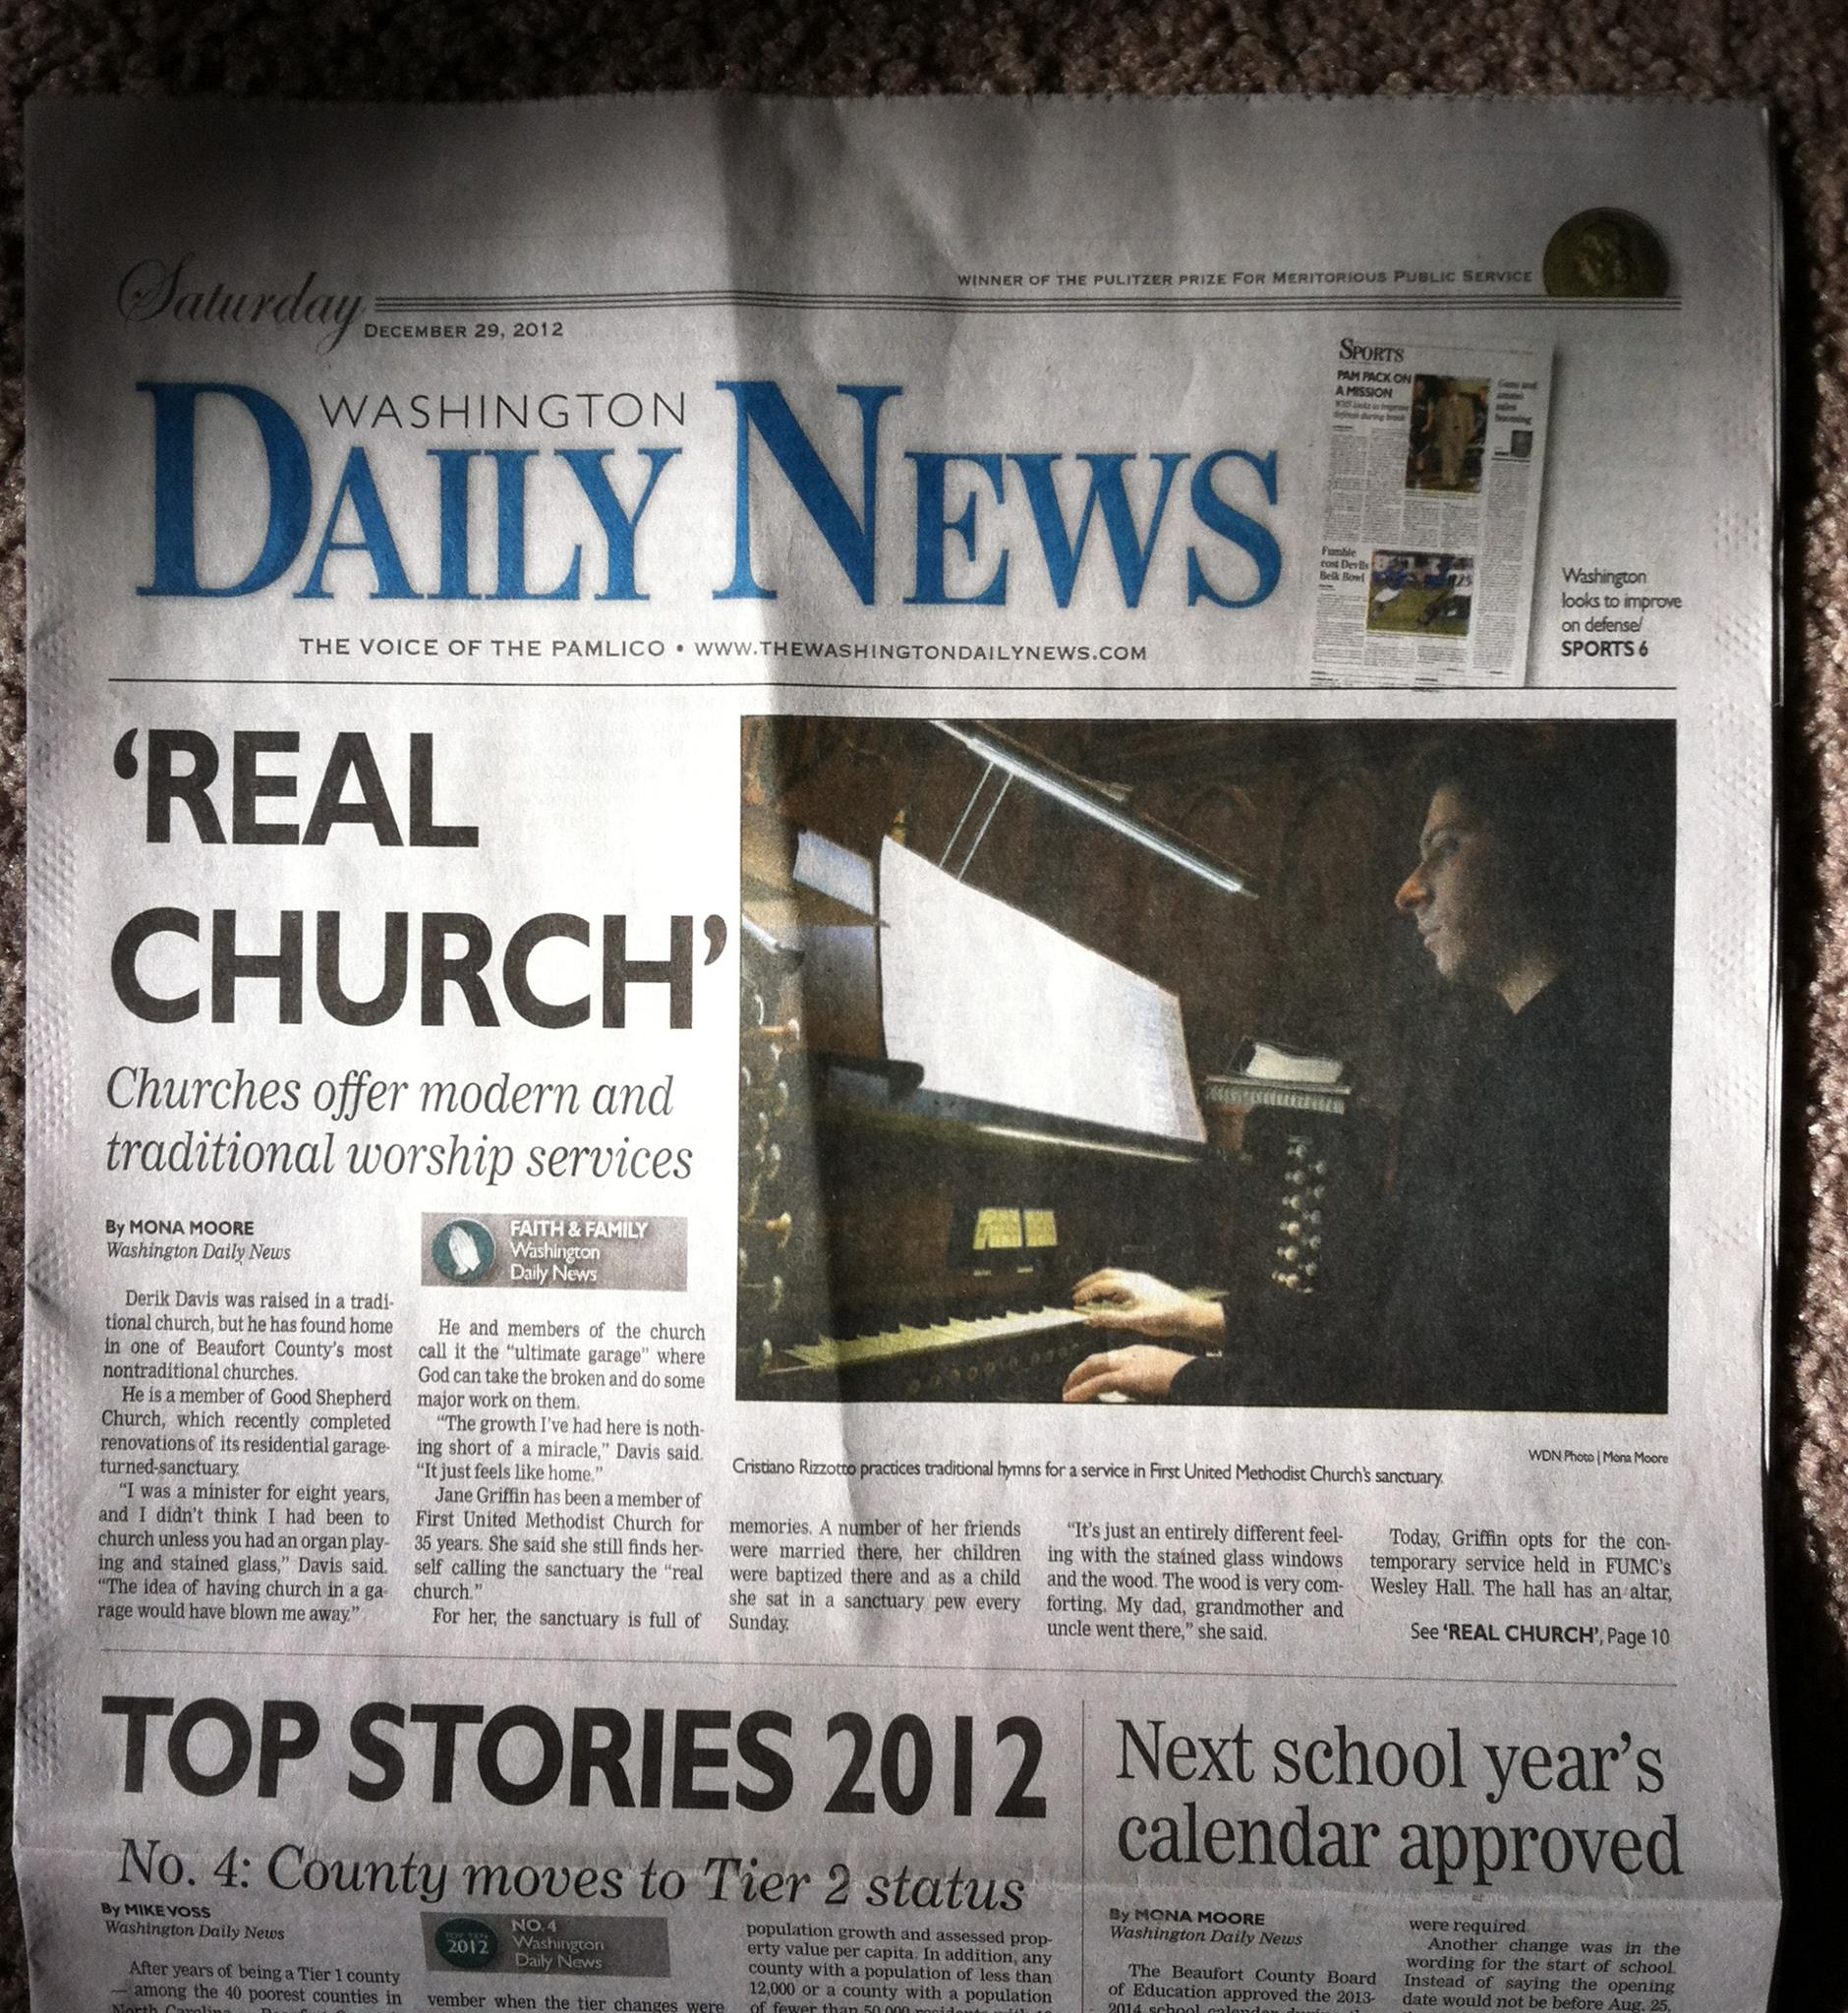 Washington Daily News - Real Church - Churches offer modern and traditional worship services - Cristiano Rizzotto